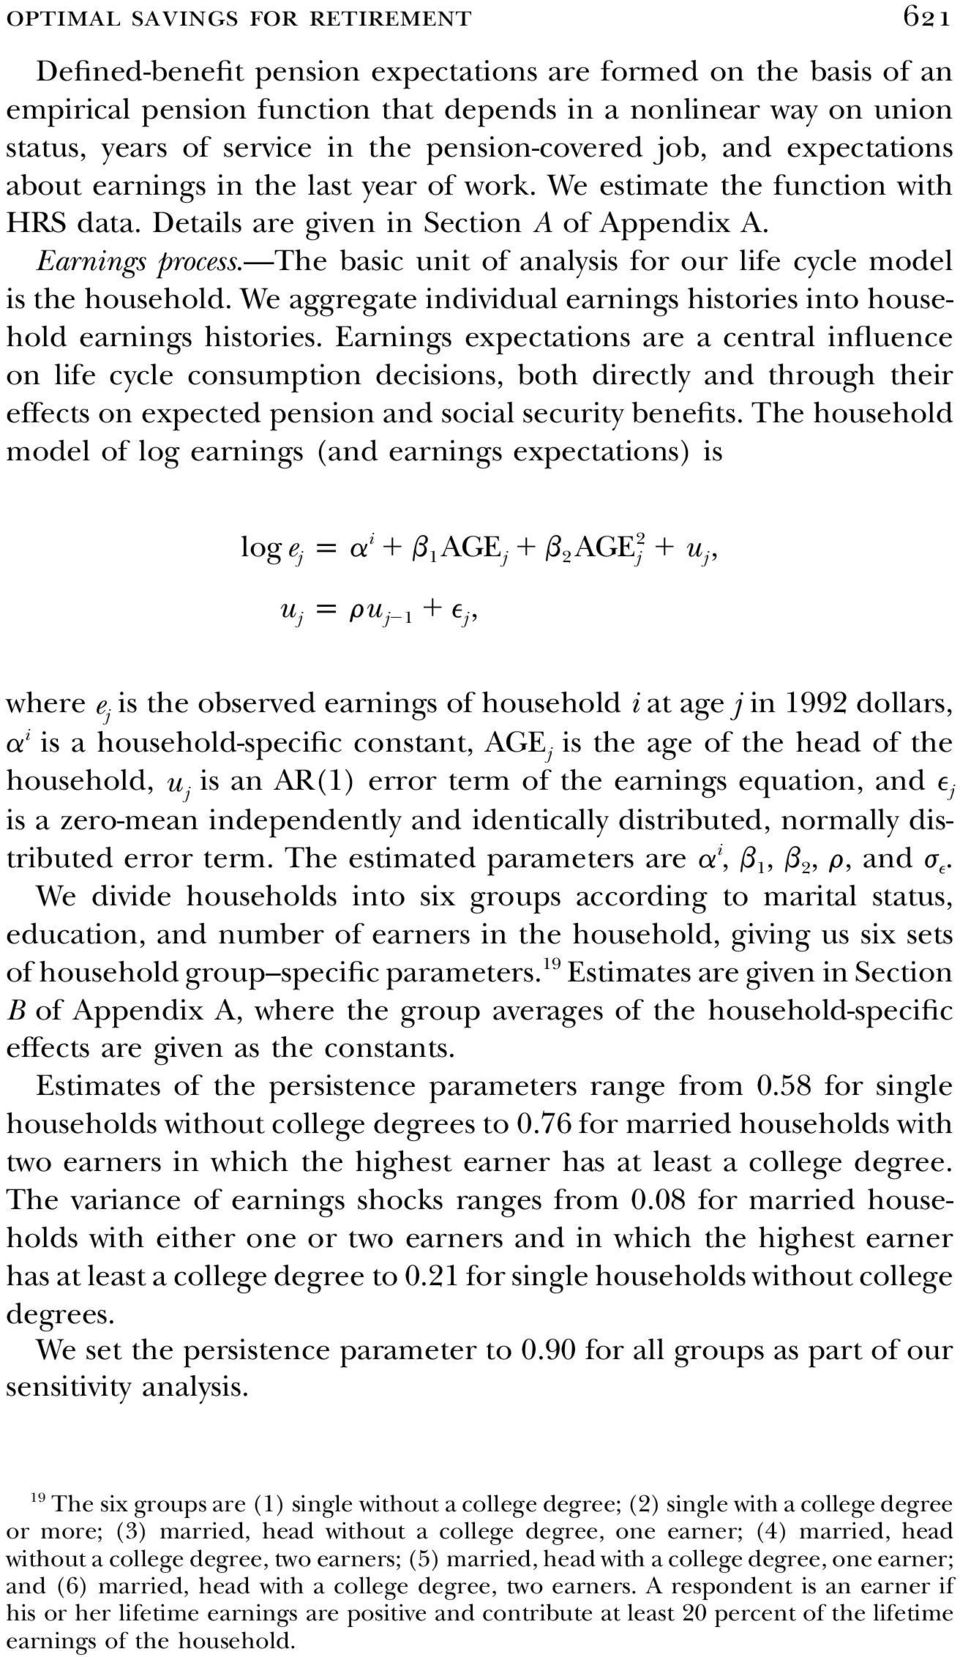 The basic unit of analysis for our life cycle model is the household. We aggregate individual earnings histories into household earnings histories.